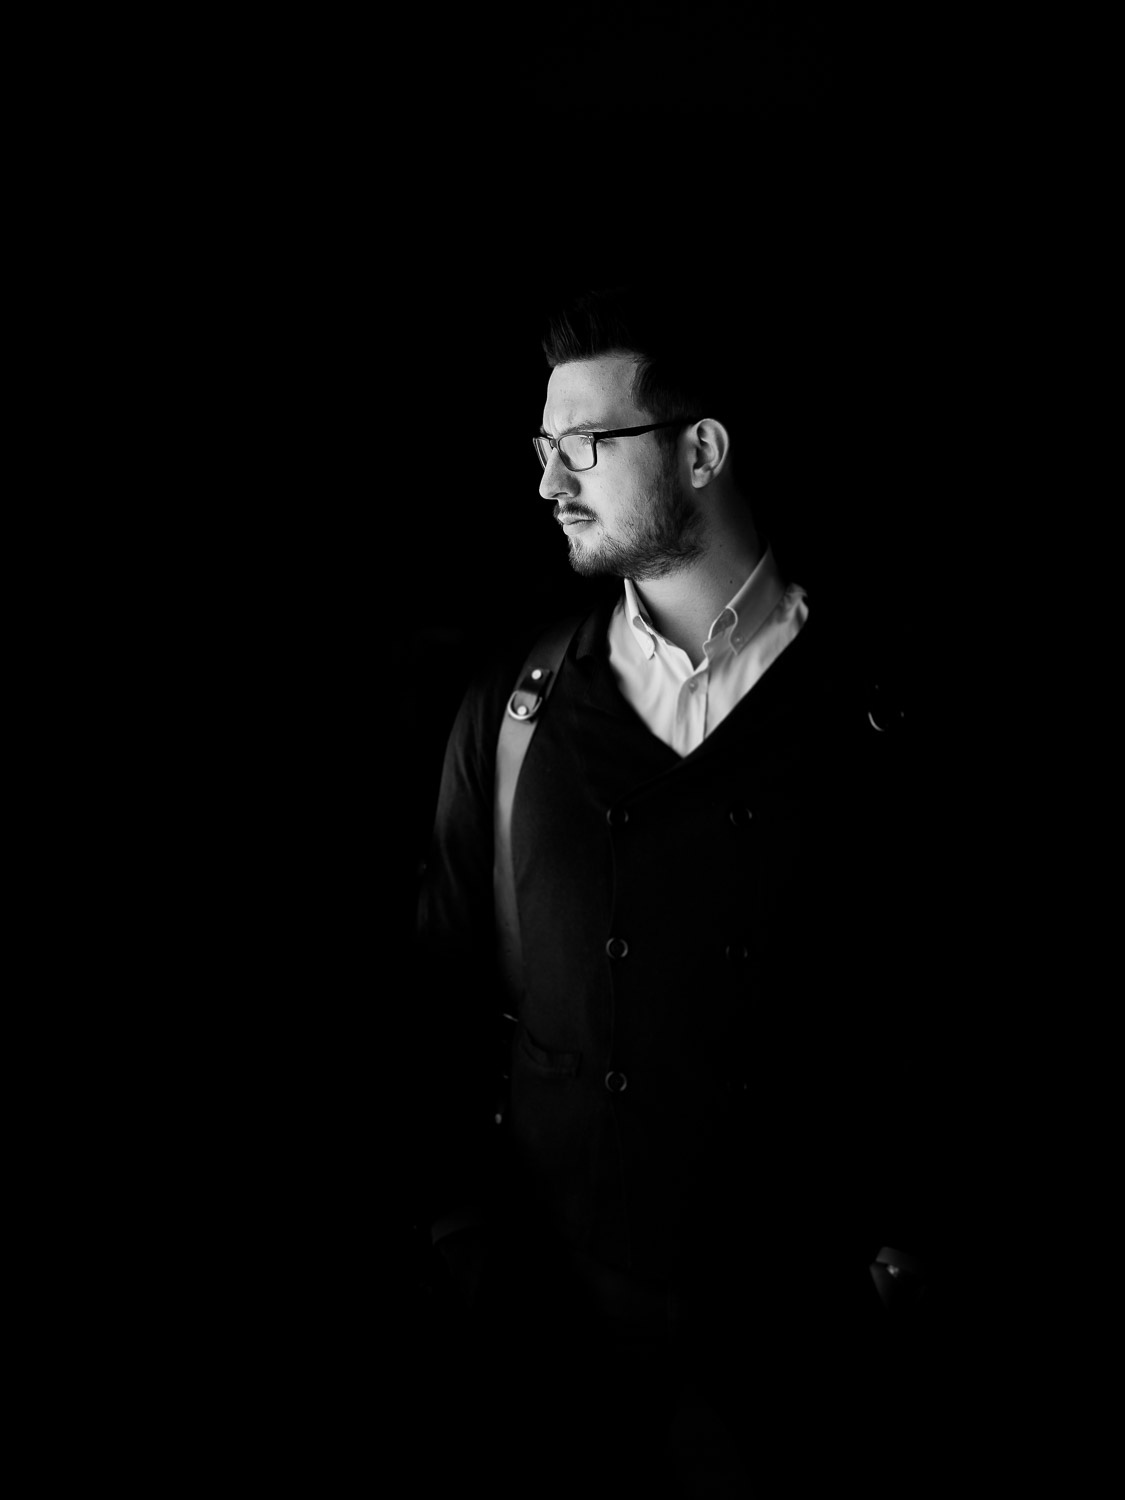 Black & White profile portrait of Italian luxury wedding photographer Francesco Bognin taken in Verona Italy